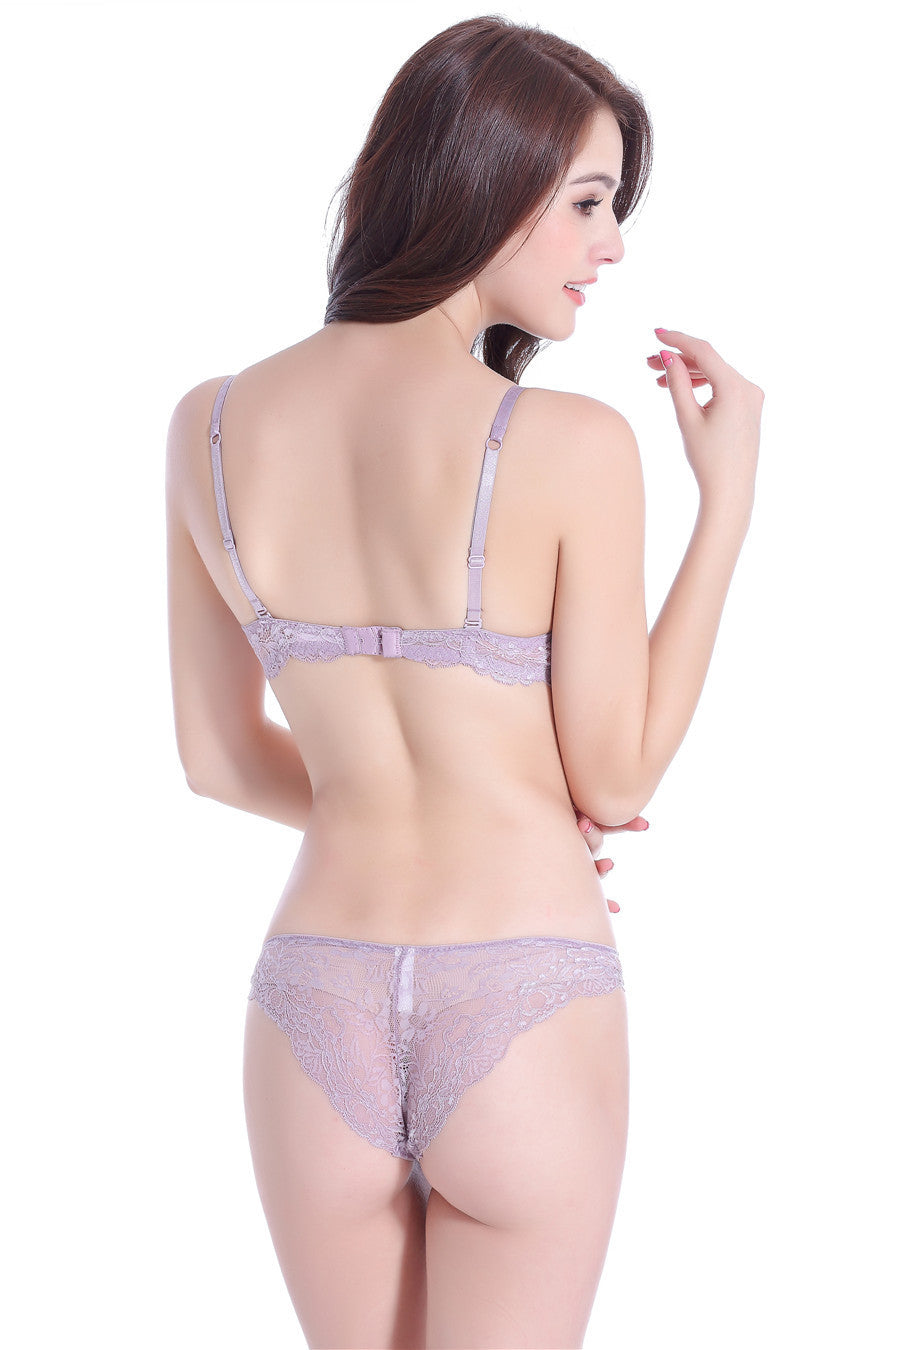 Satin and Lace Push up Bra and Matching Panties Set - Twilight Silk